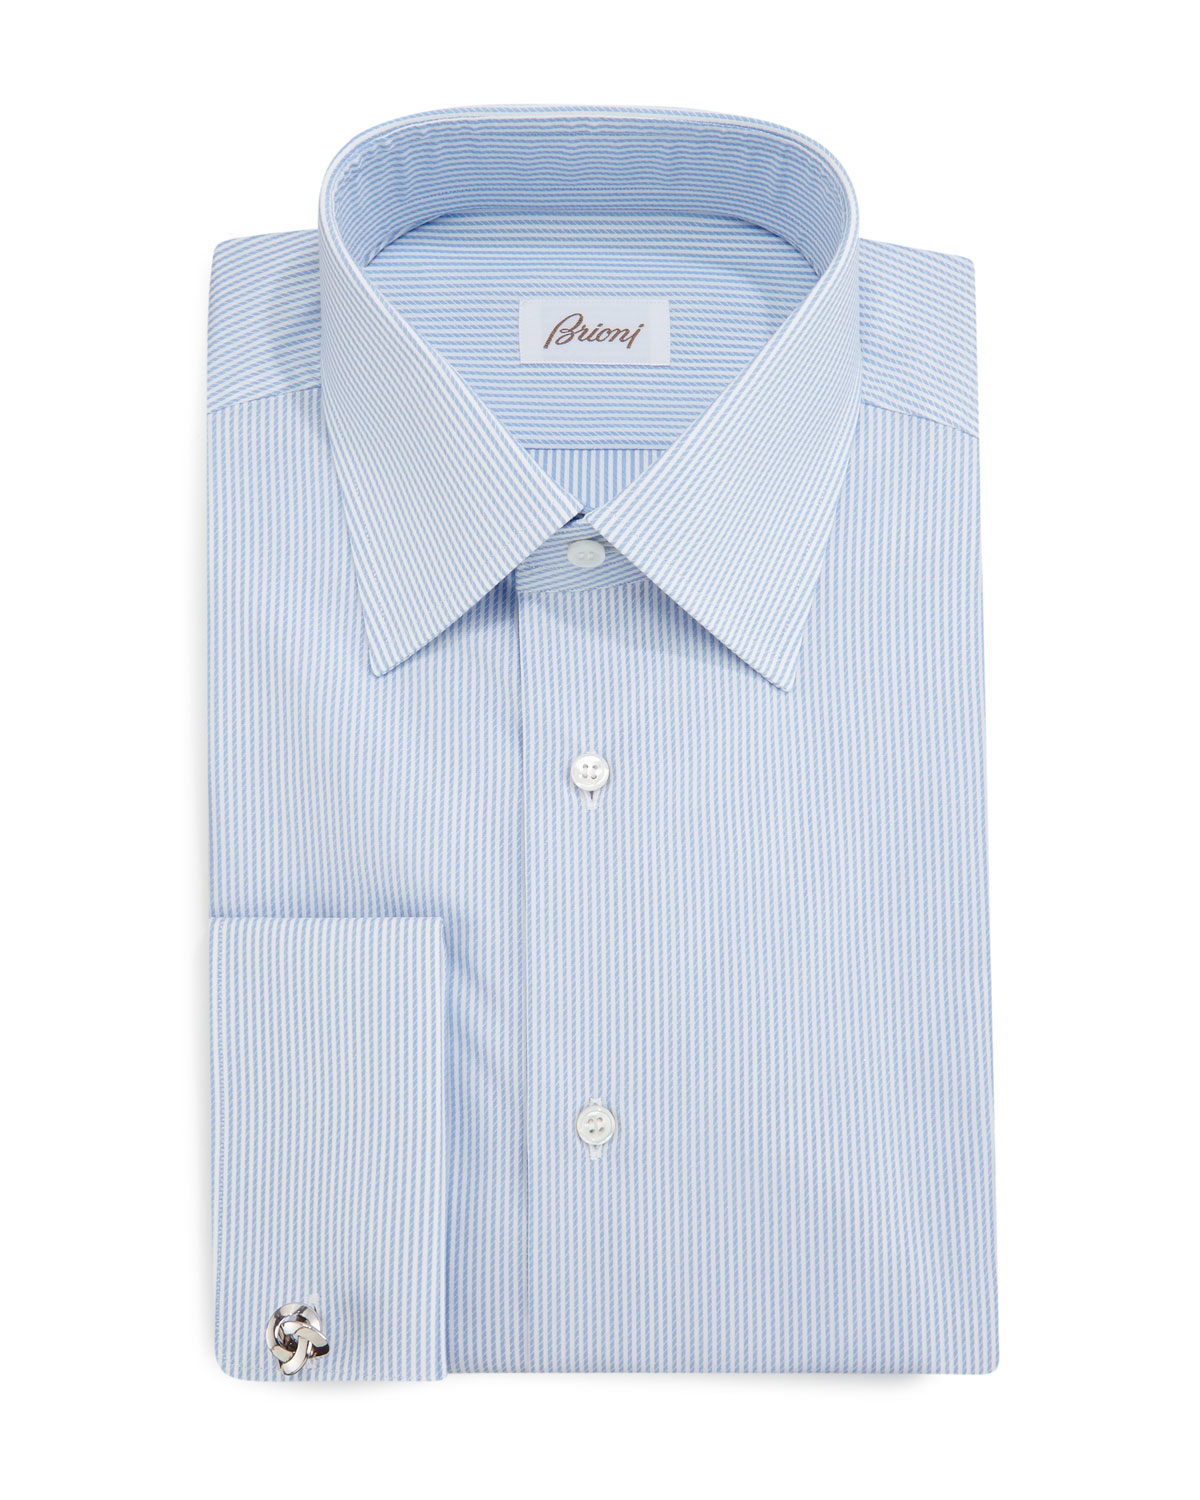 Brioni Rope Stripe French Cuff Dress Shirt In Blue For Men